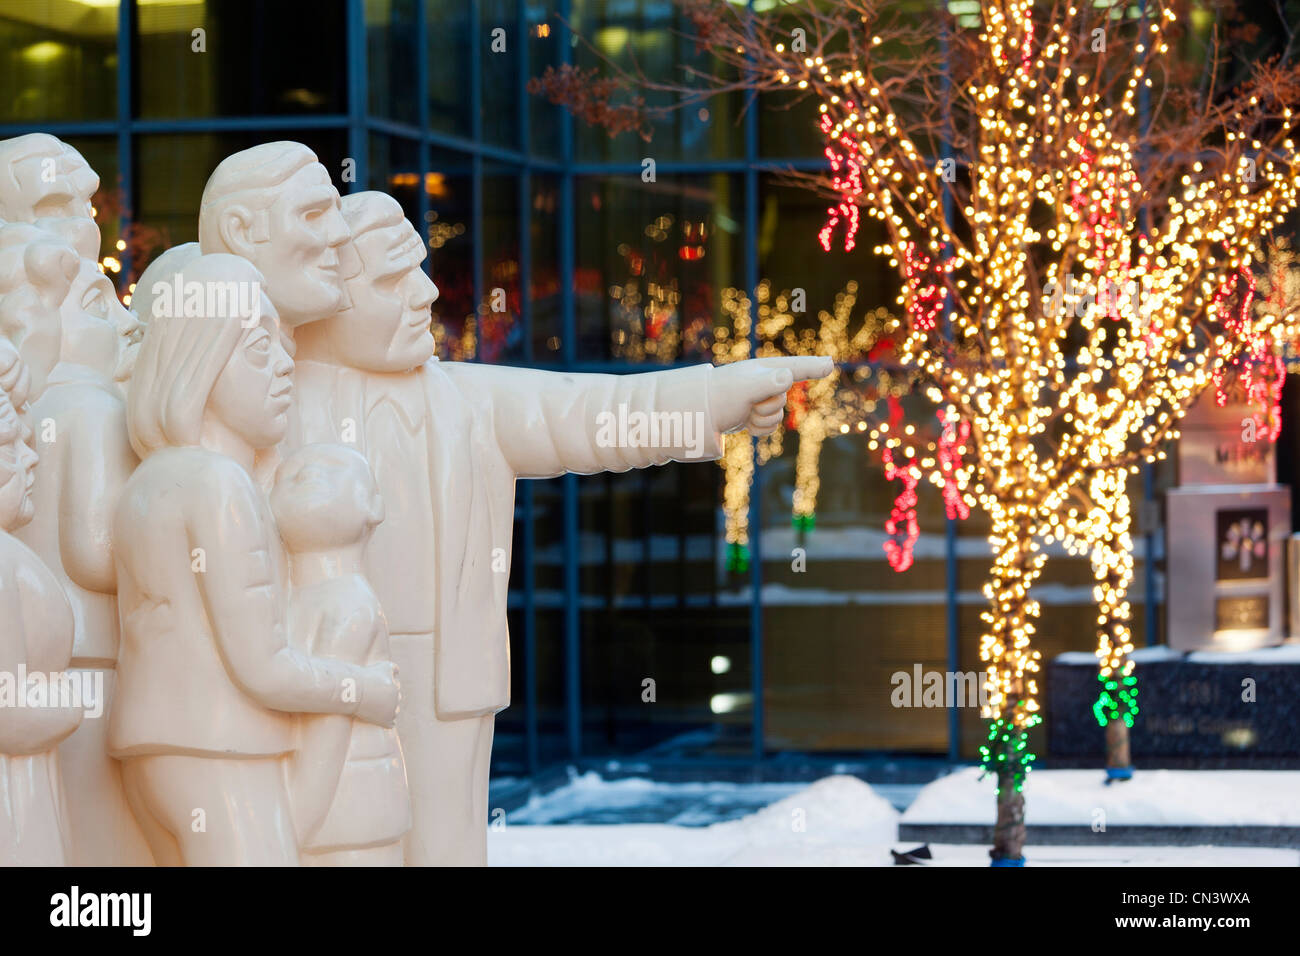 canada quebec province montreal decorations and christmas lights avenue mcgill college sculpture la foule illumine by